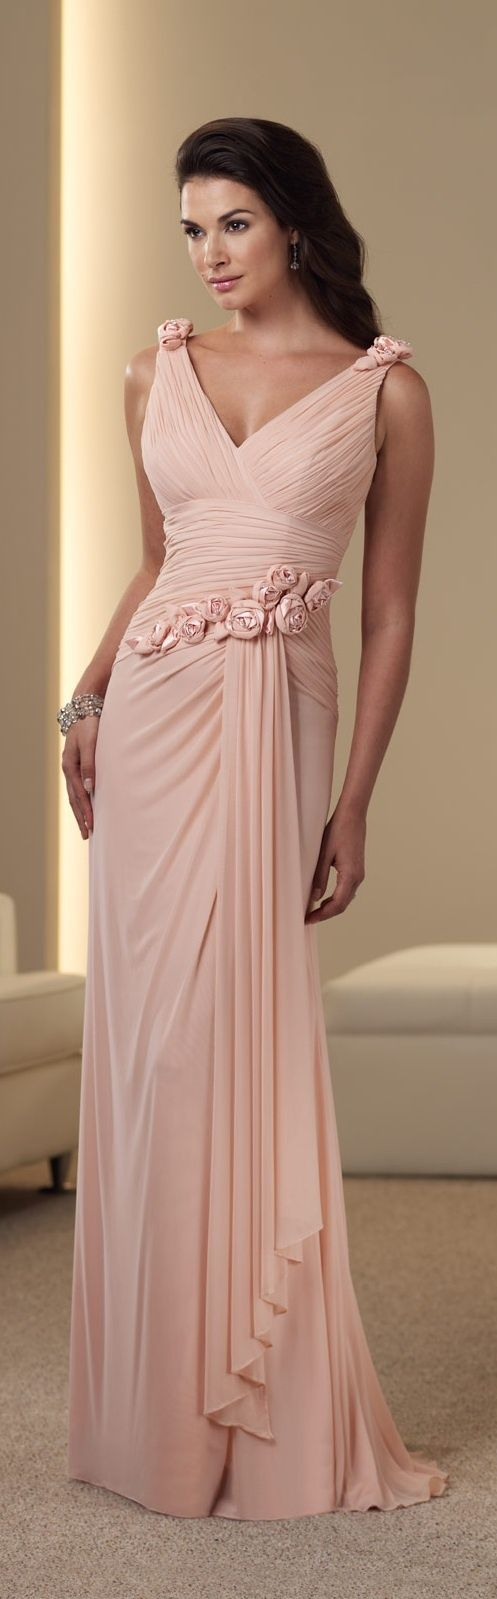 best dress n clothes after wedding images on pinterest